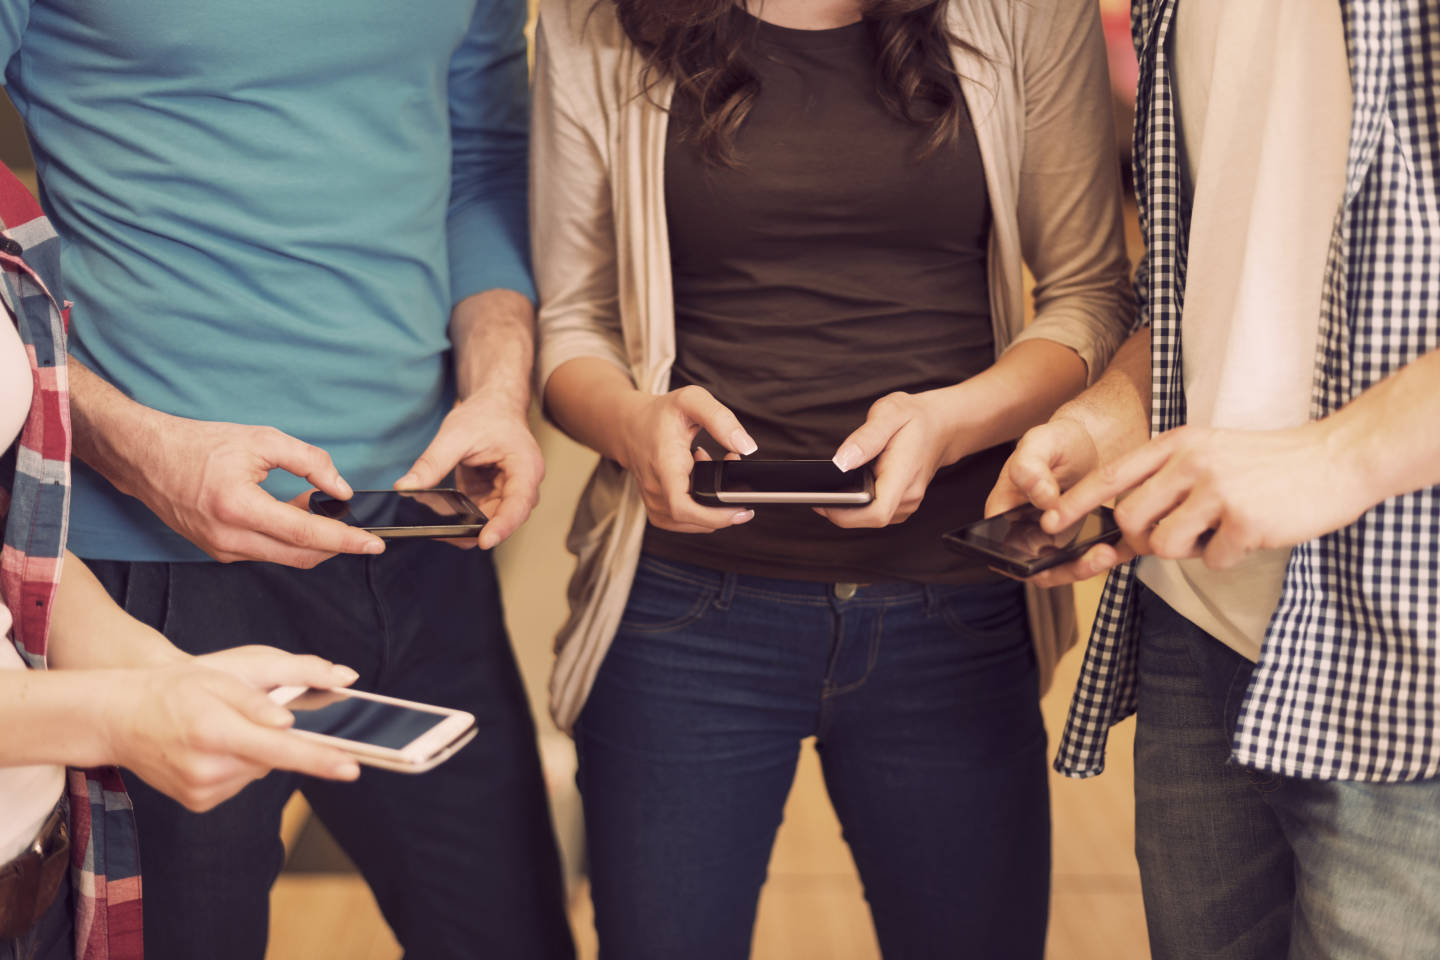 a group of people using mobile phones